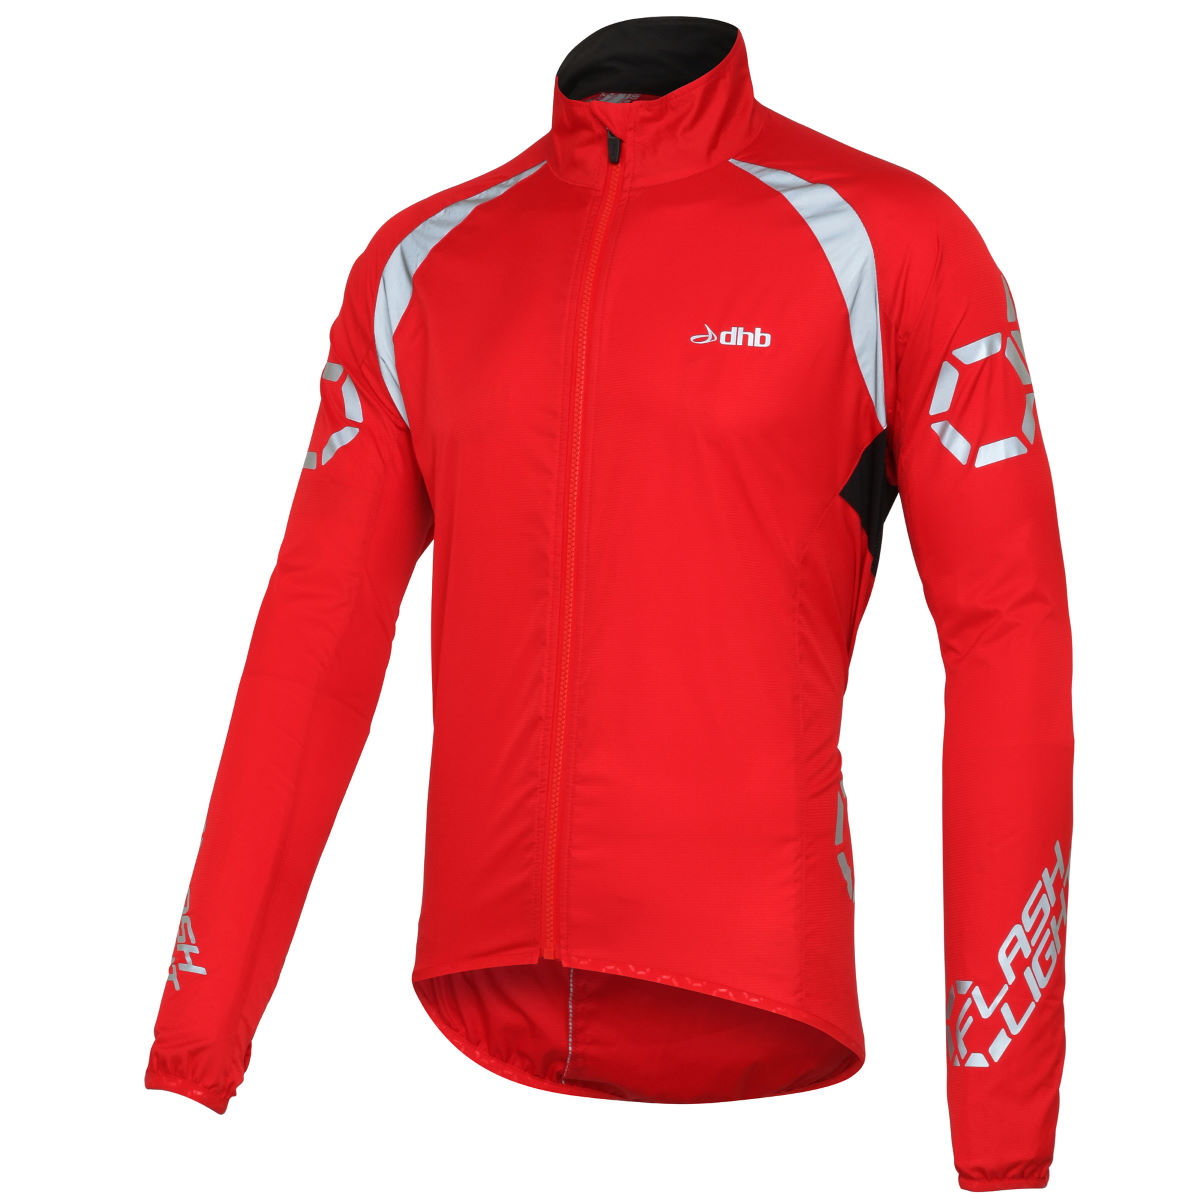 Veste dhb Flashlight (coupe-vent) - L Rouge Coupe-vents vélo